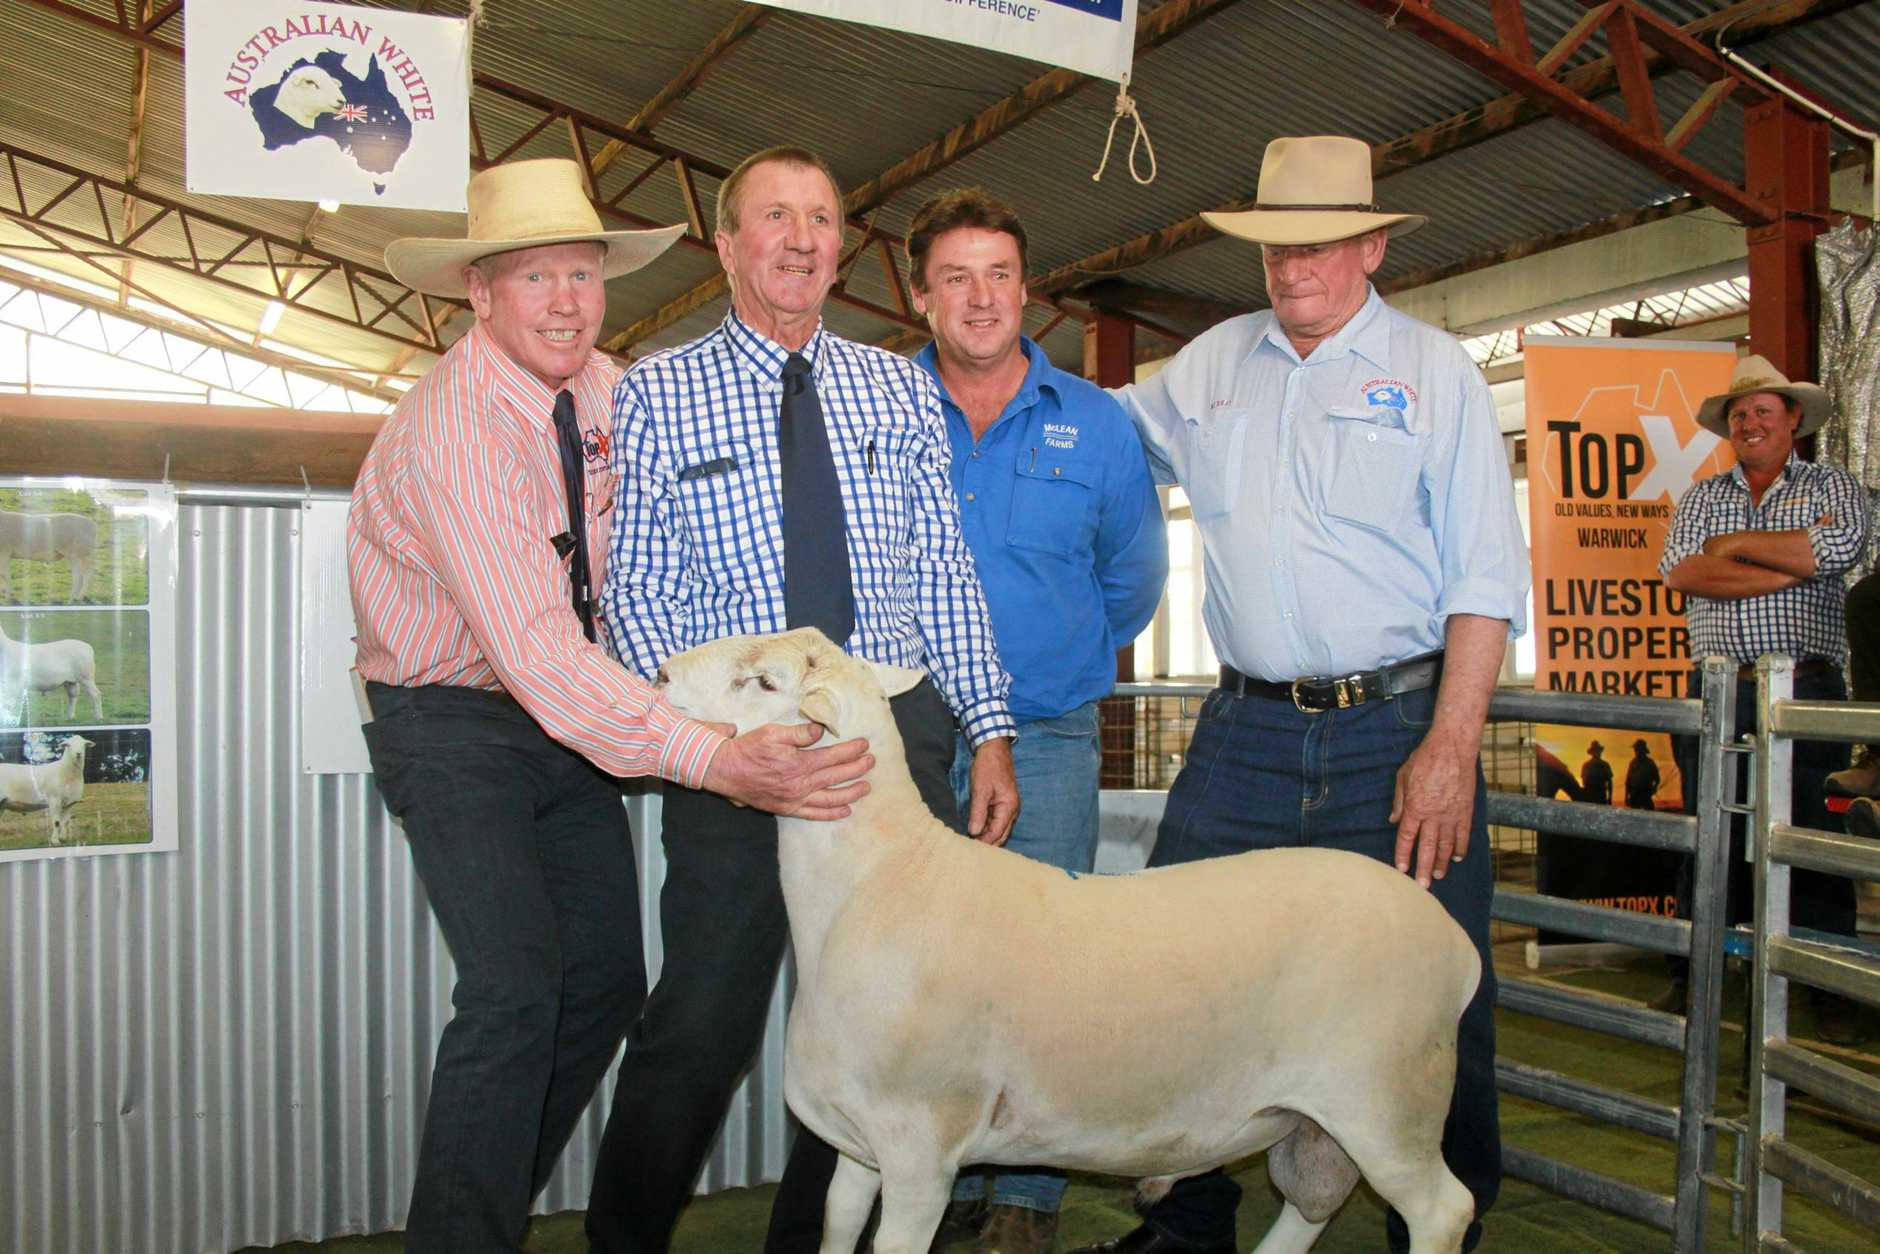 BEST ON SHOW: George McVeigh from TopX with David Friend of Nowlan Stock and Station Agents, Paul Keevers from McLean Farms and local vendor Murray Schroder.  Pictured with the $4000 top selling ram.